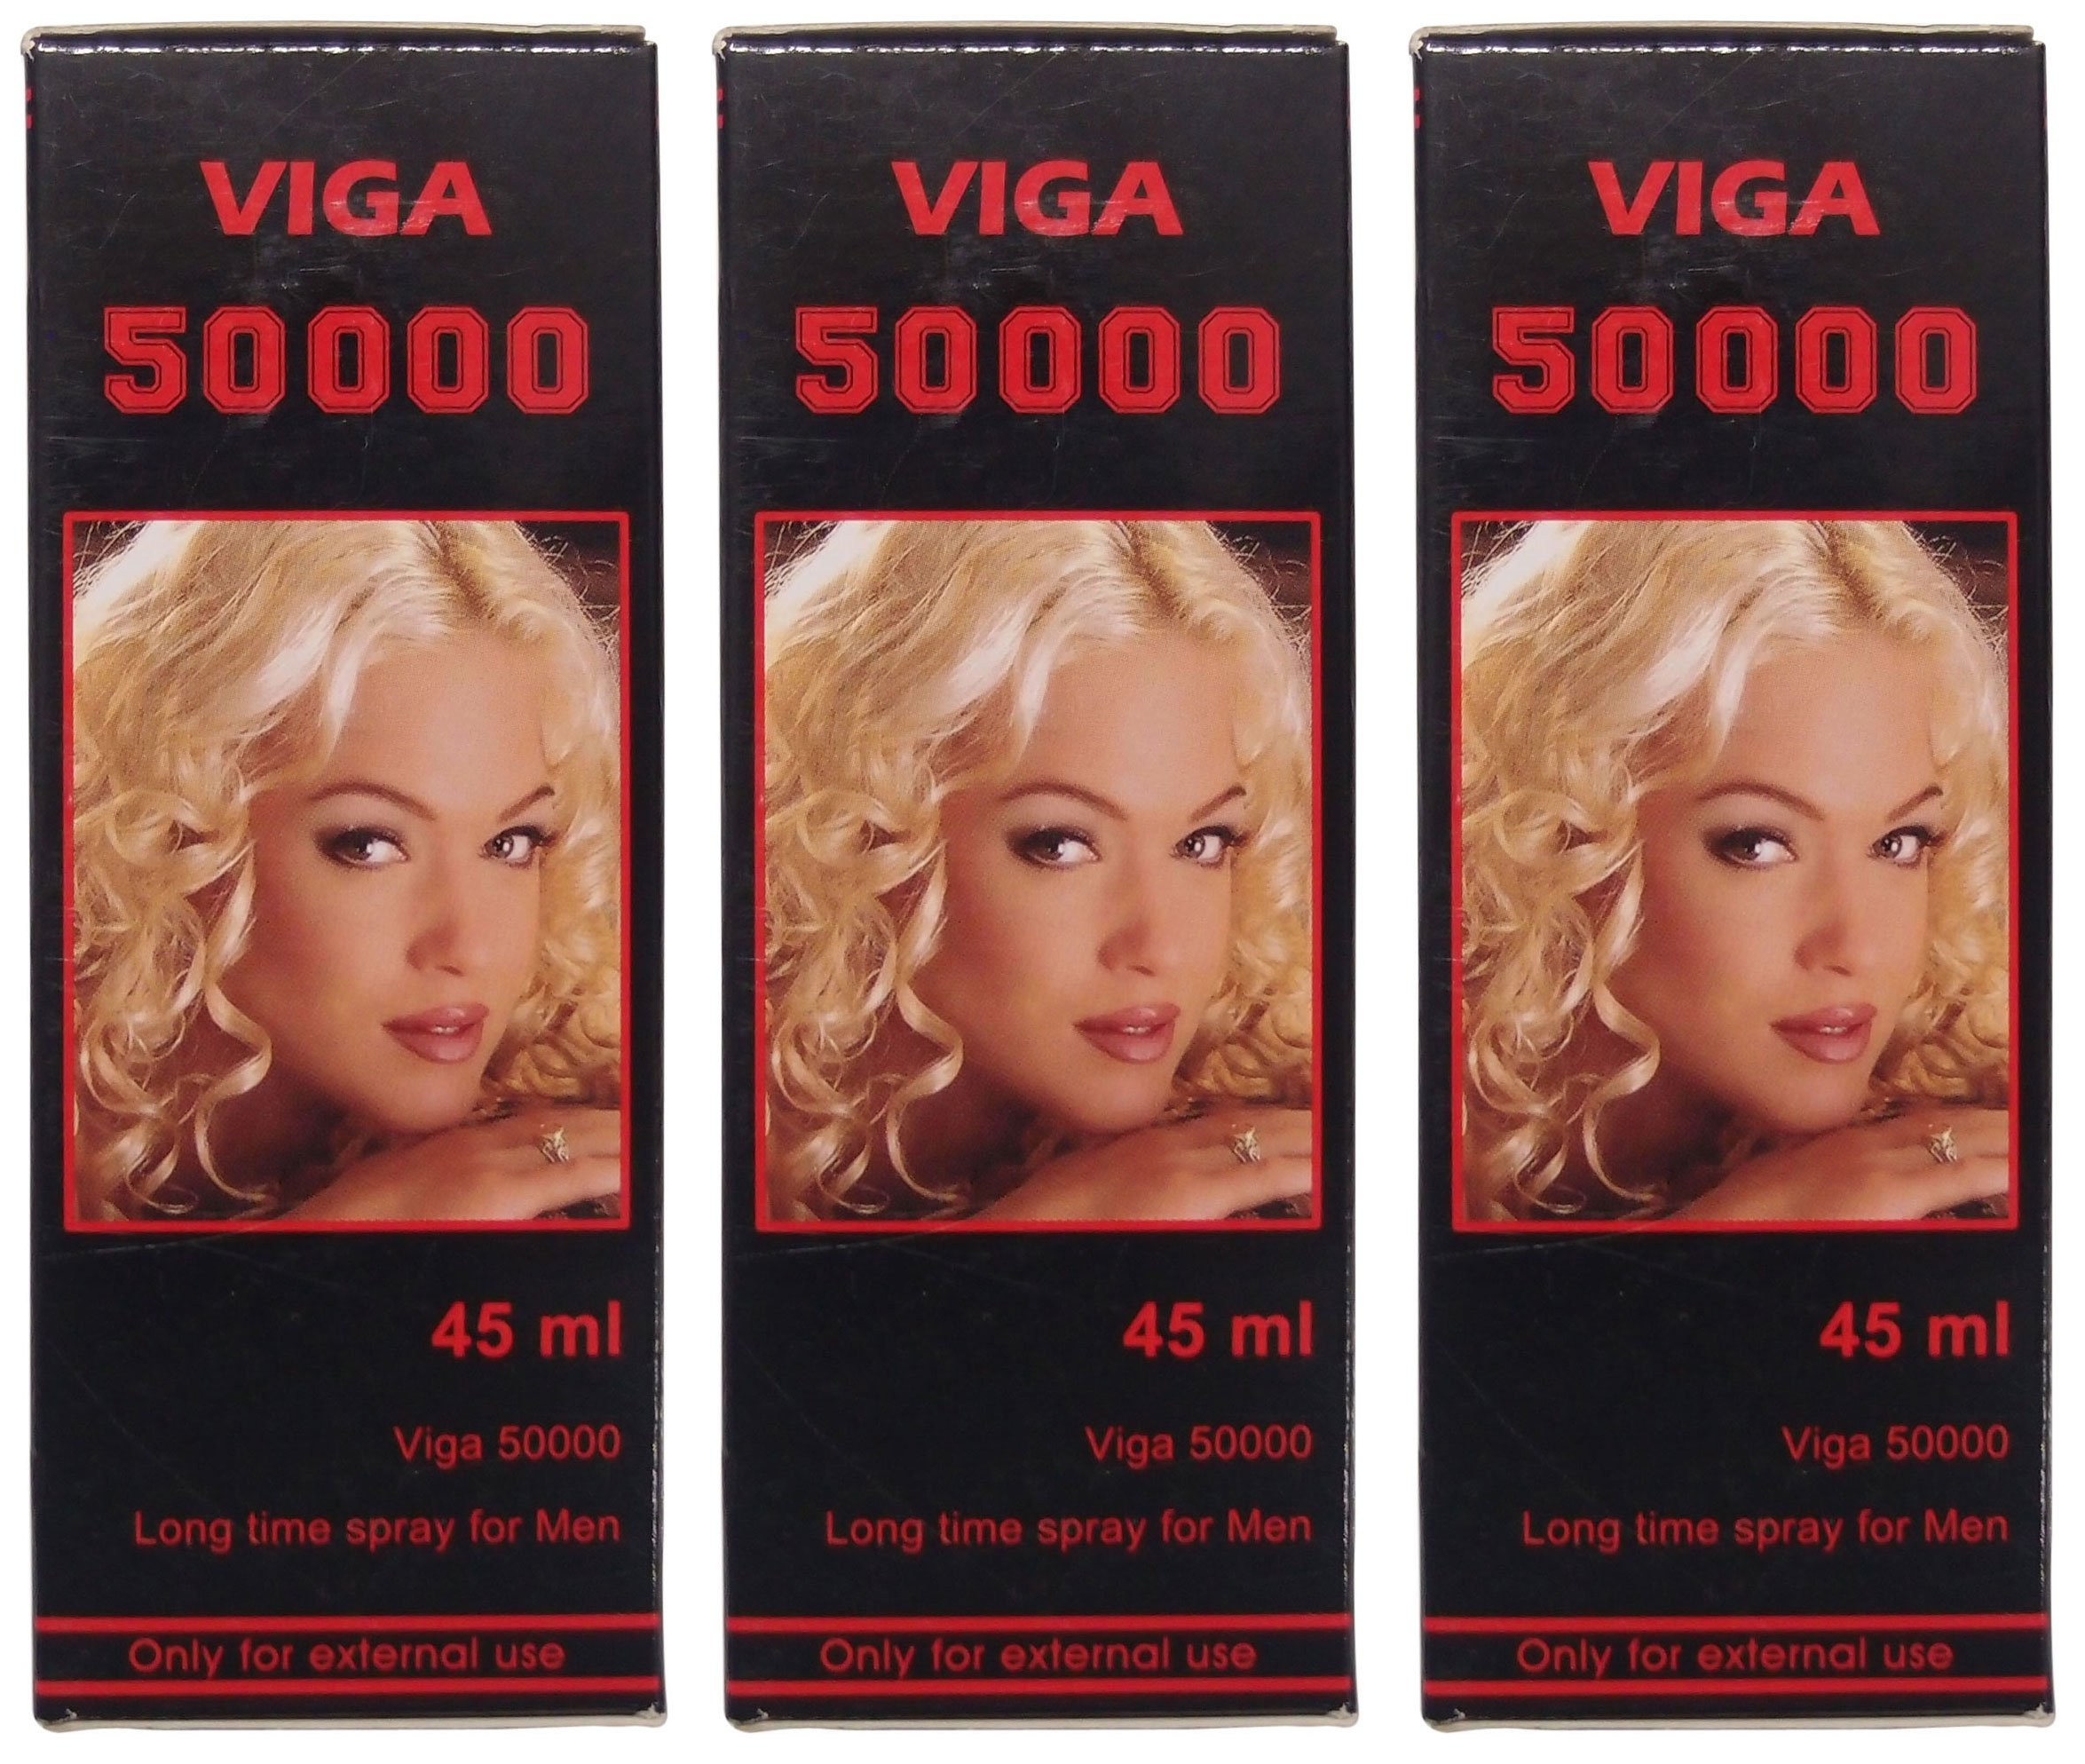 3 X Viga 50000 (Delay Spray for Men) with Vitamin E - Expedited International Delivery - PLUS LOVE POTION PEN by Viga 50000